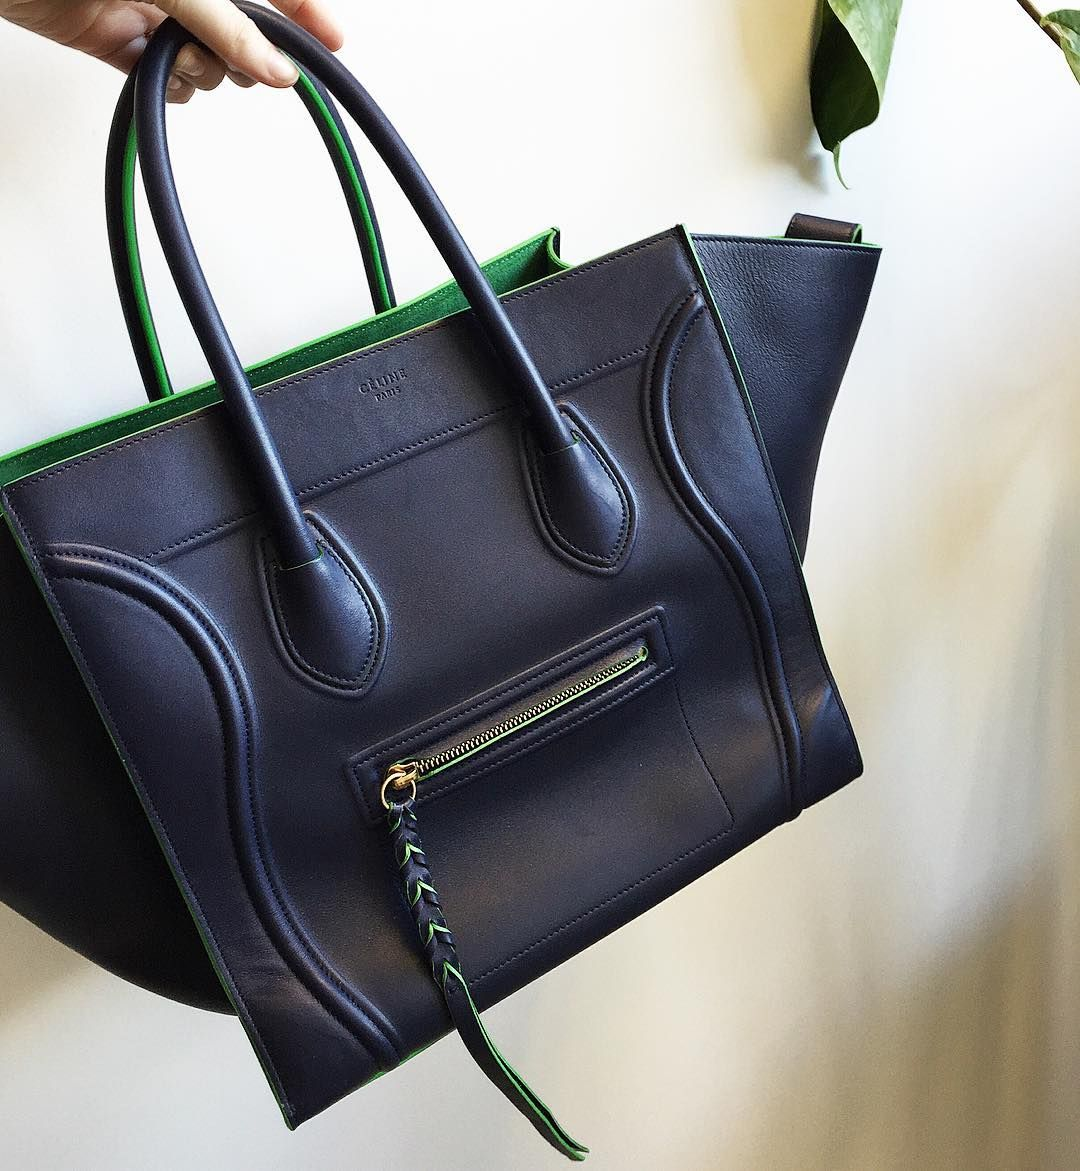 This gorgeous #Céline luggage tote is now online!